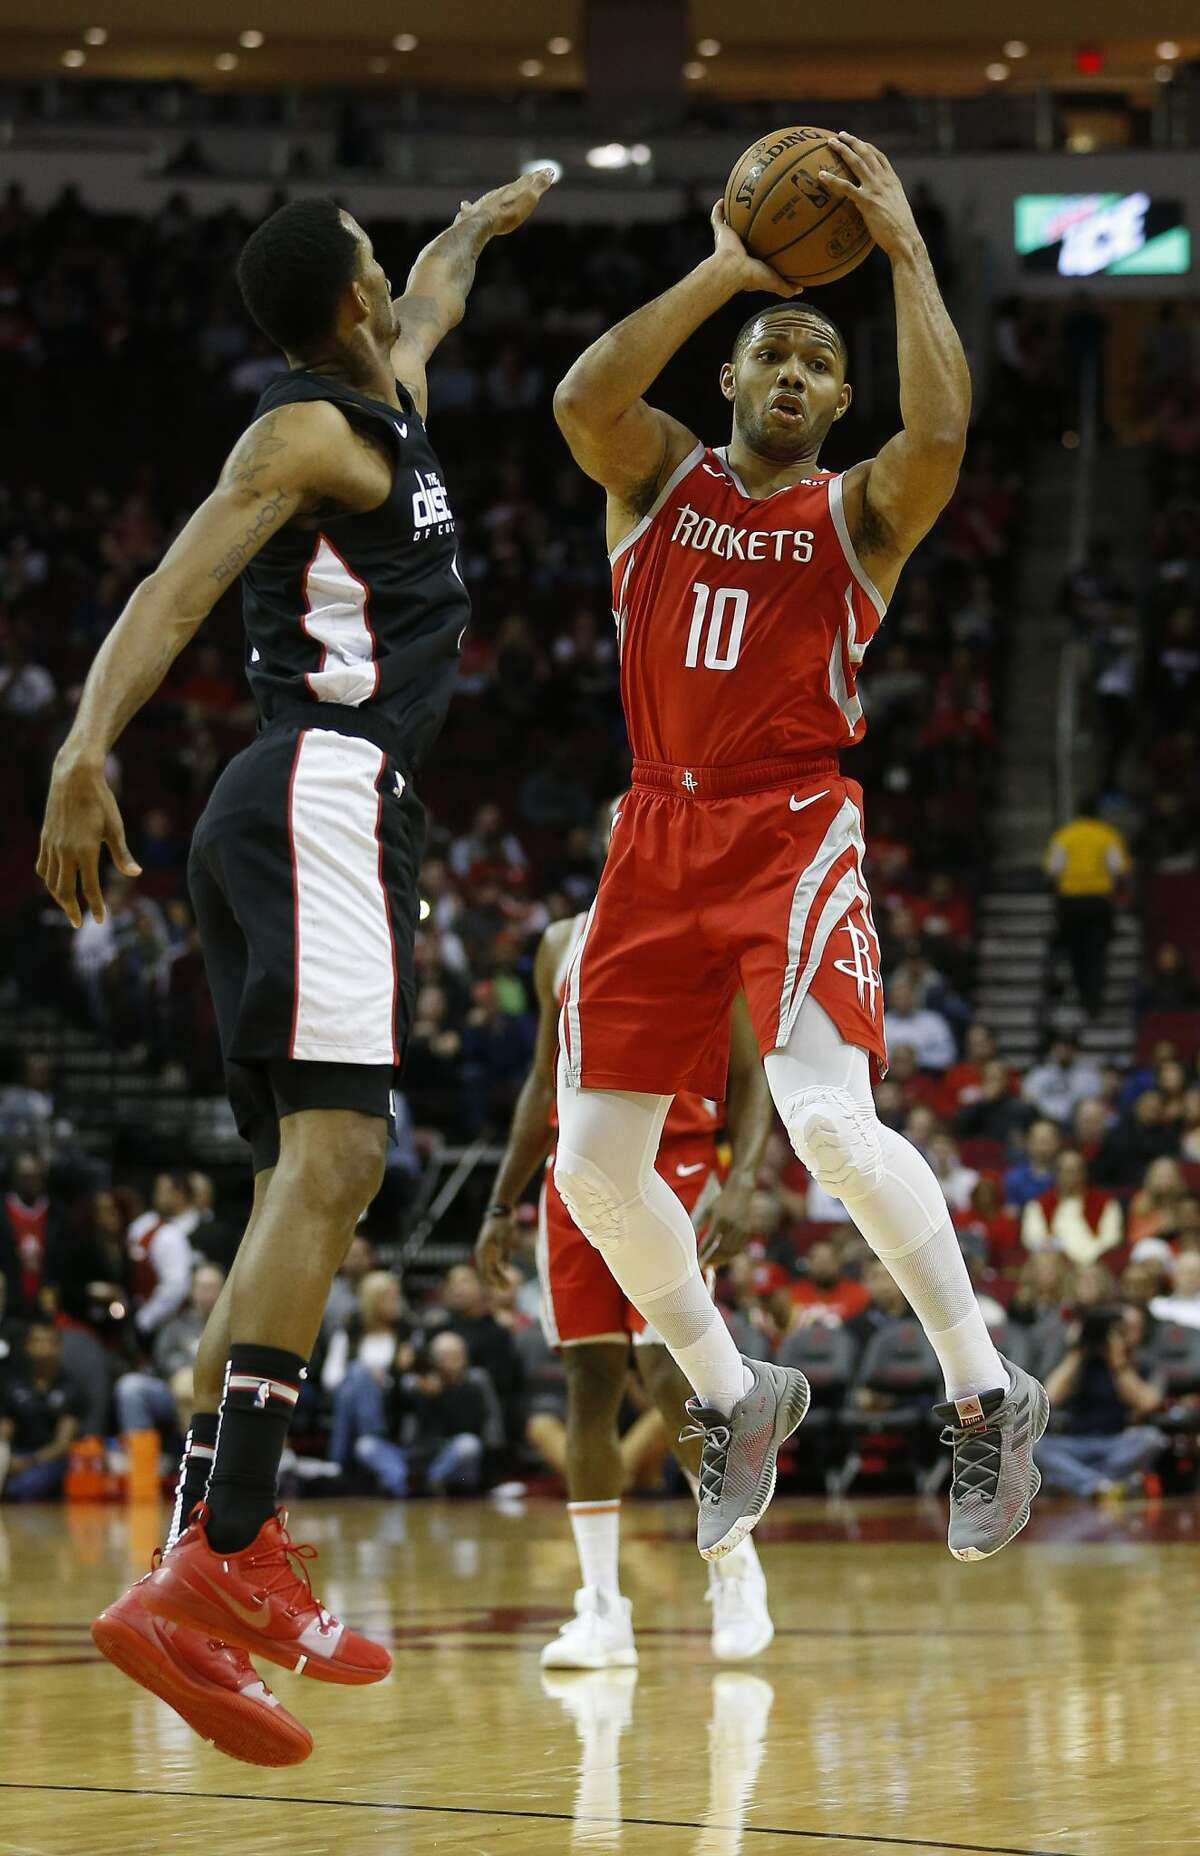 Houston Rockets guard Eric Gordon (10) passes the ball over Washington Wizards forward Trevor Ariza (1) during the first half of an NBA game at Toyota Center, Wednesday, Dec. 19, 2018, in Houston.